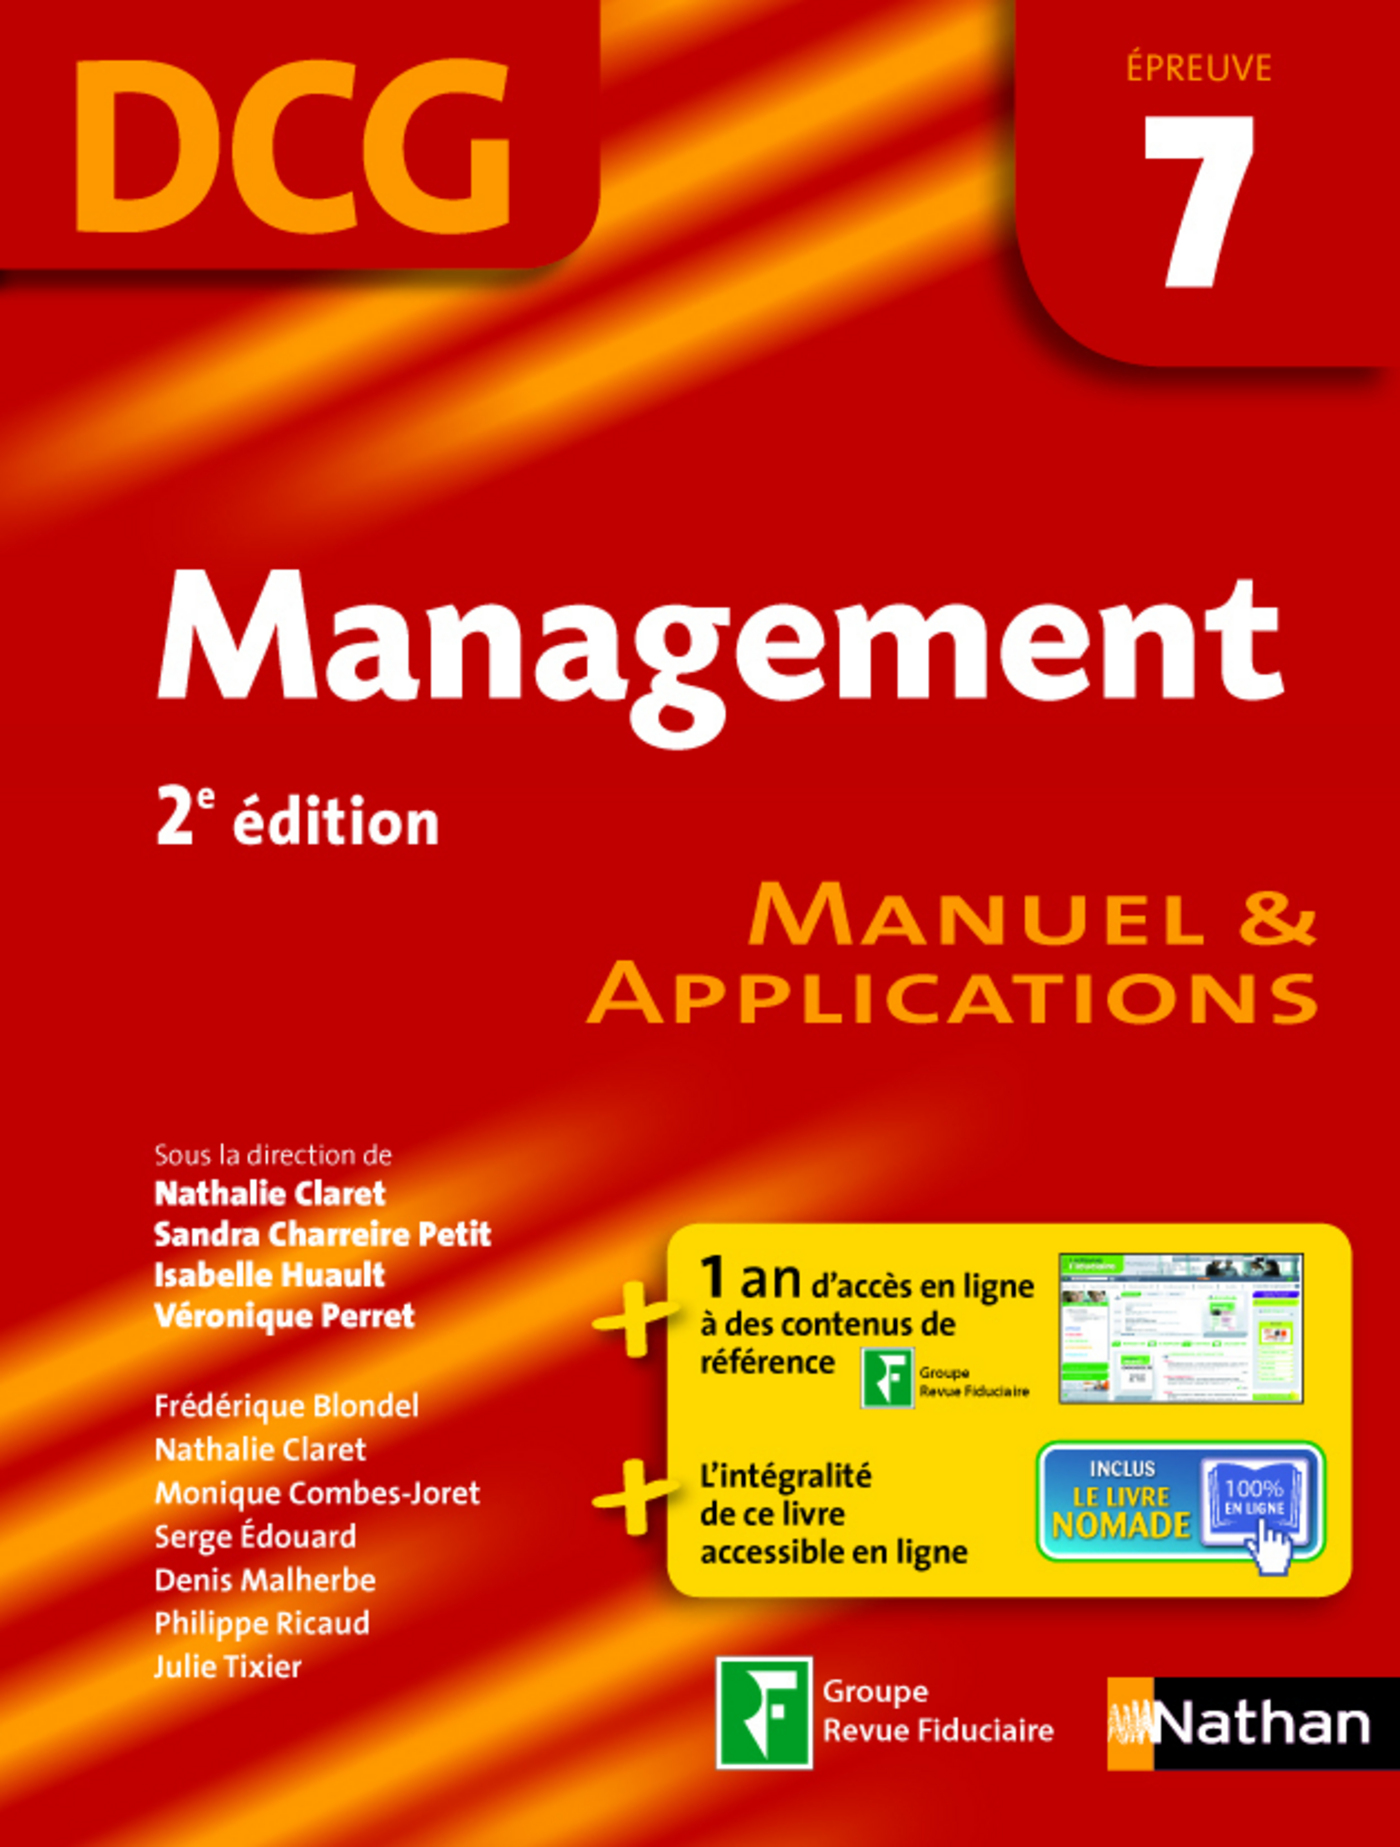 Management - épreuve 7 - DCG manuel (ebook)